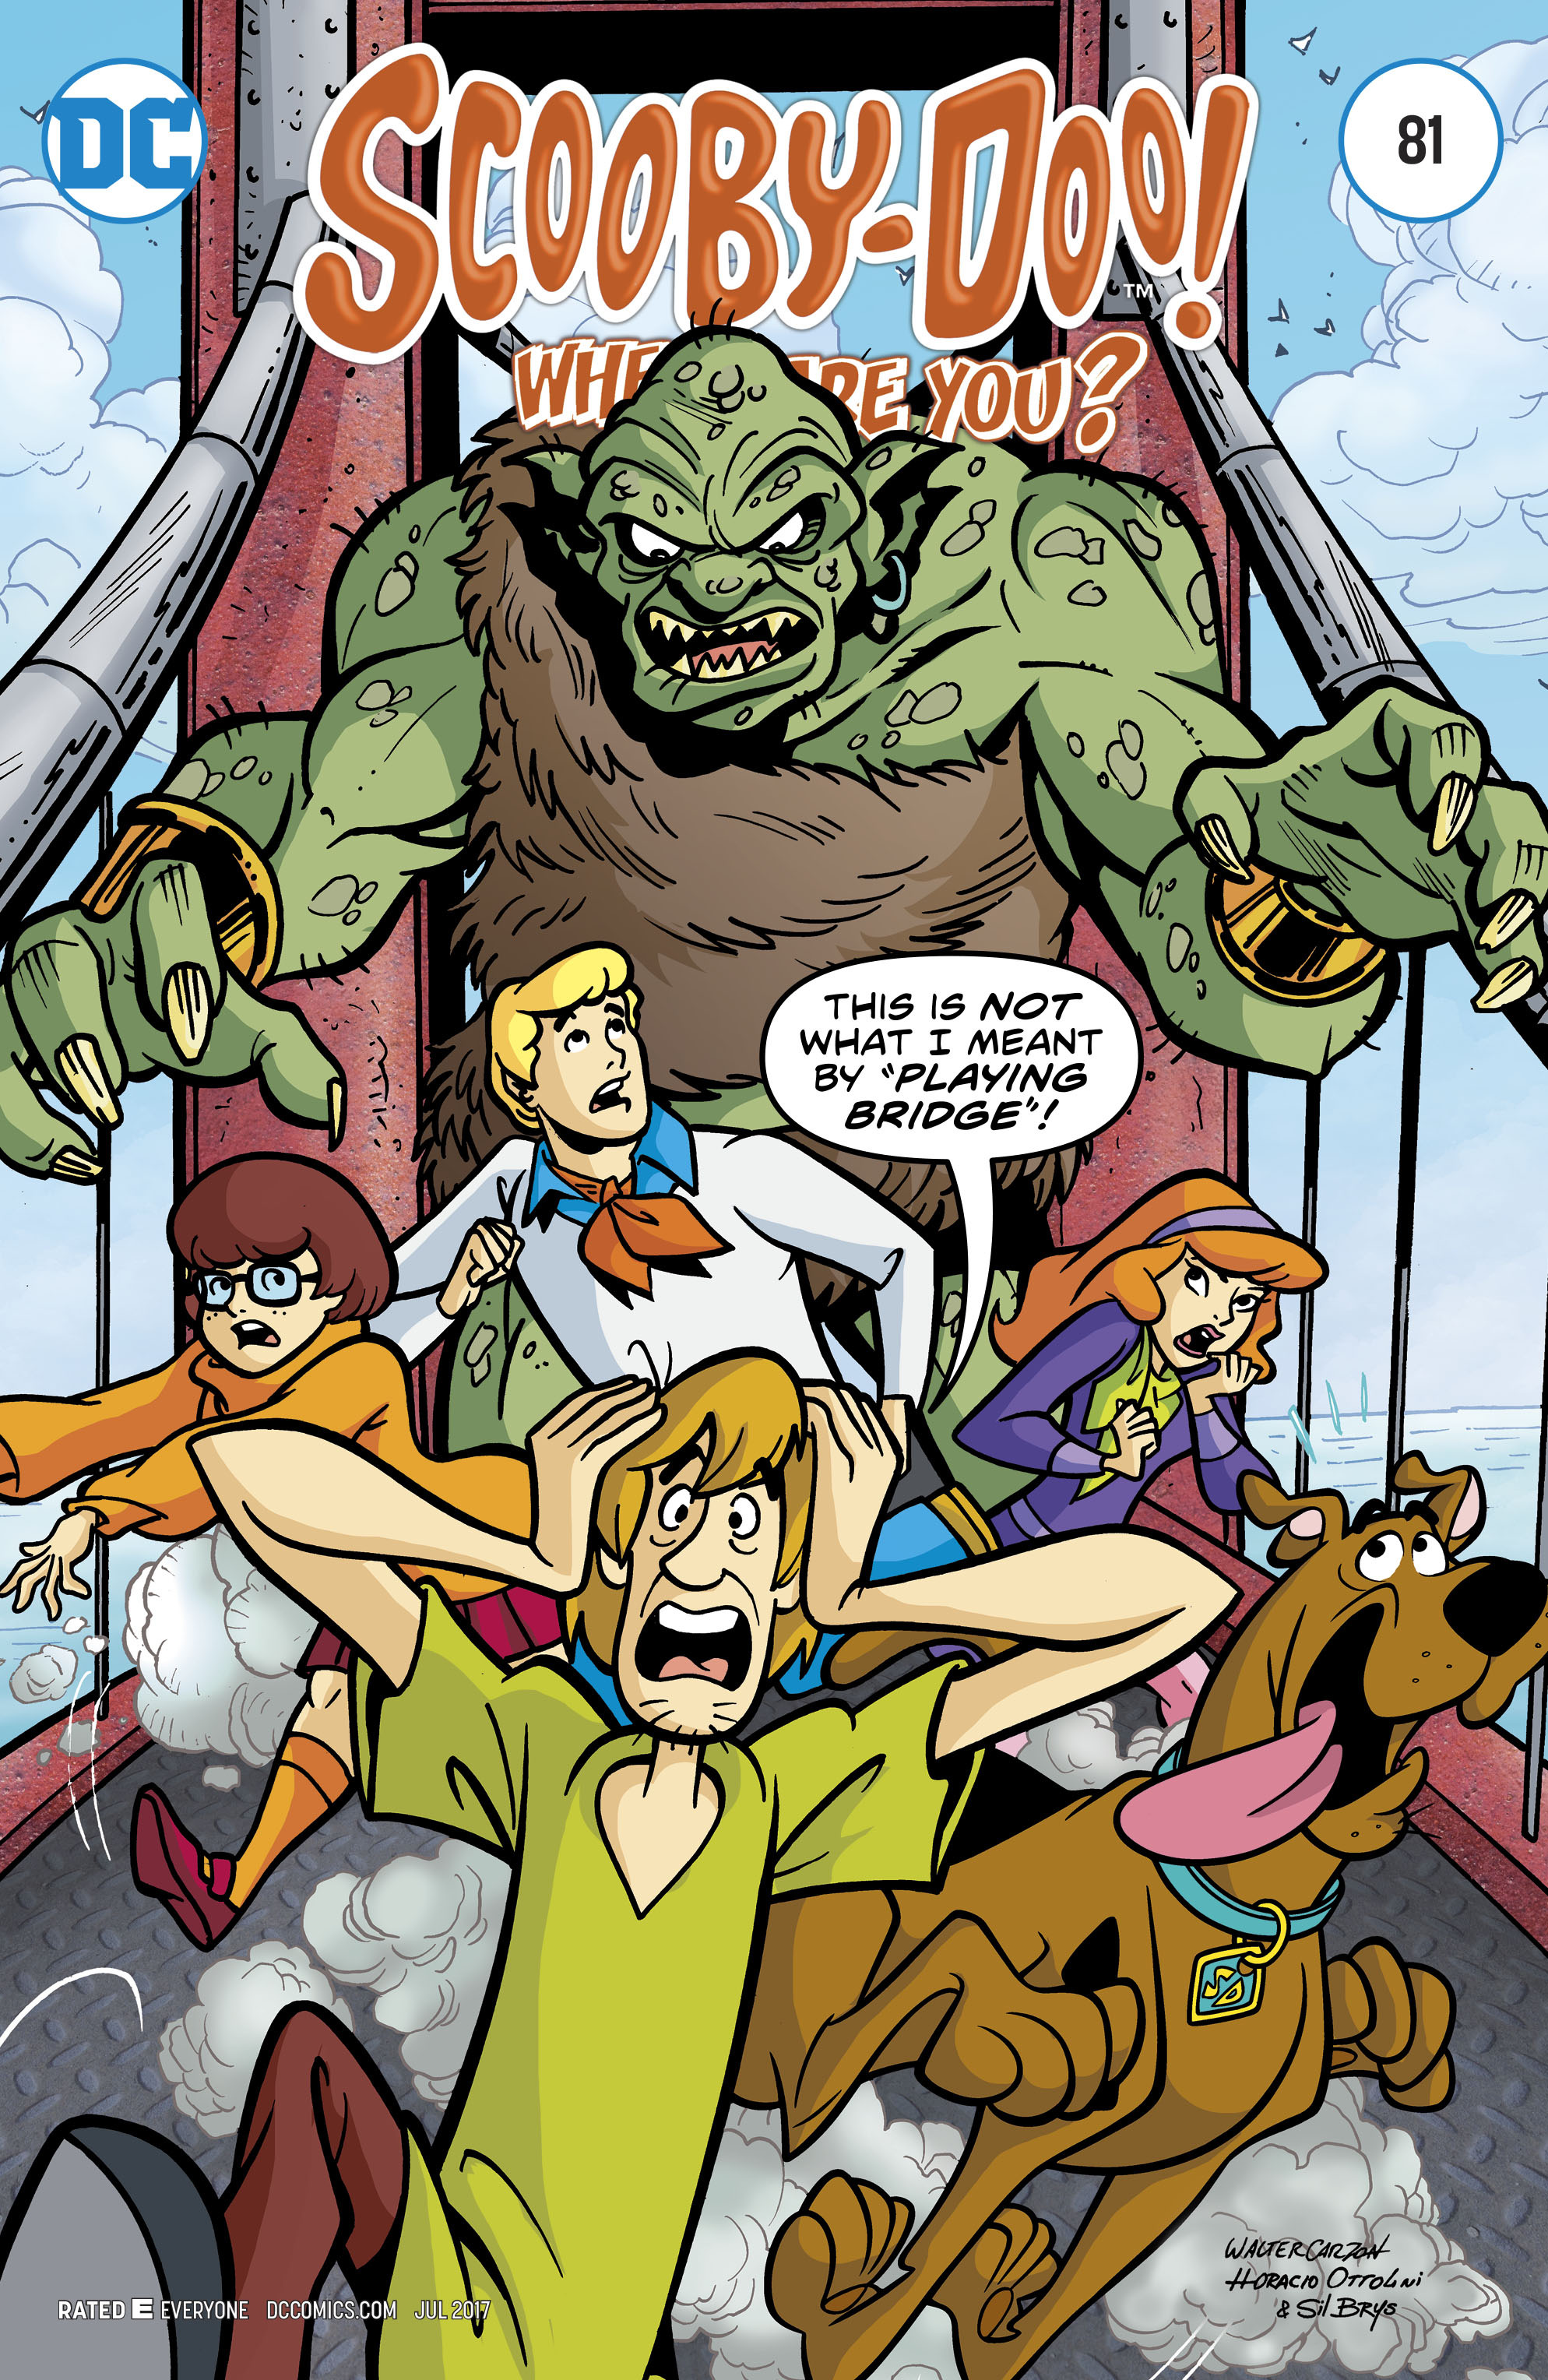 Read online Scooby-Doo: Where Are You? comic -  Issue #81 - 1